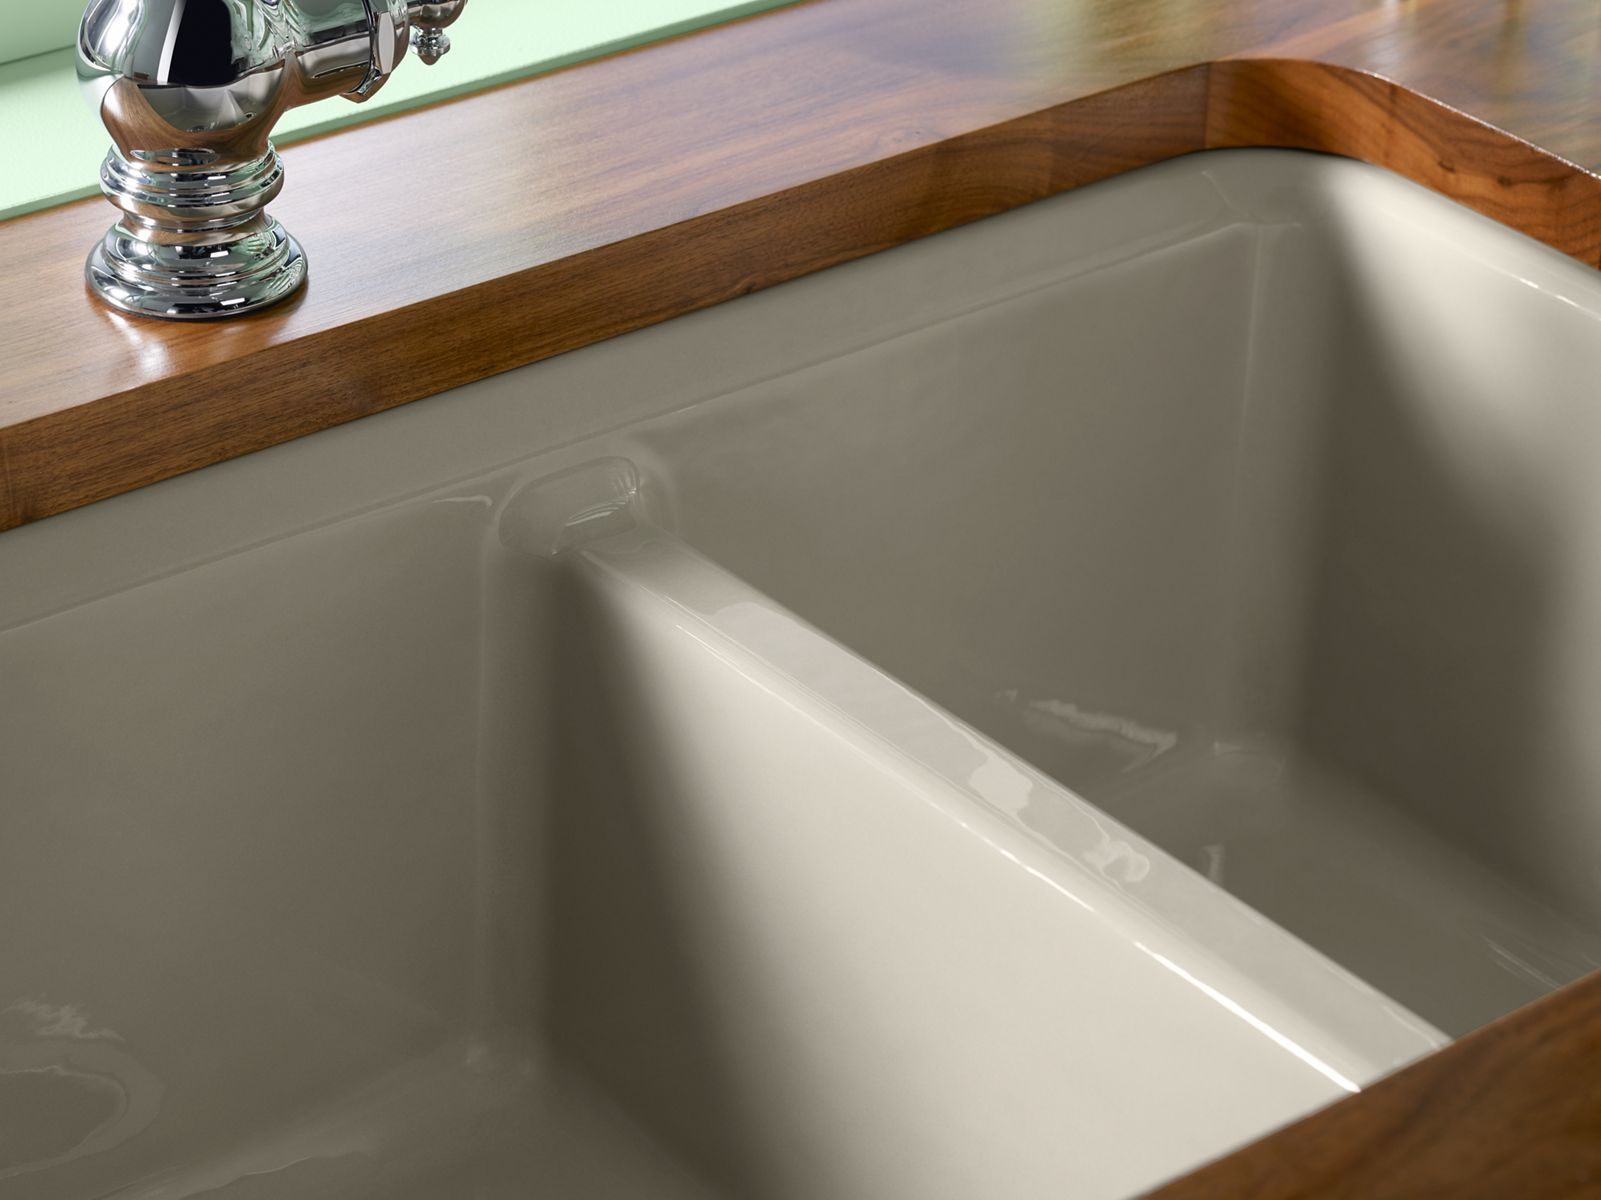 Enameled Cast Iron Kitchen Sinks